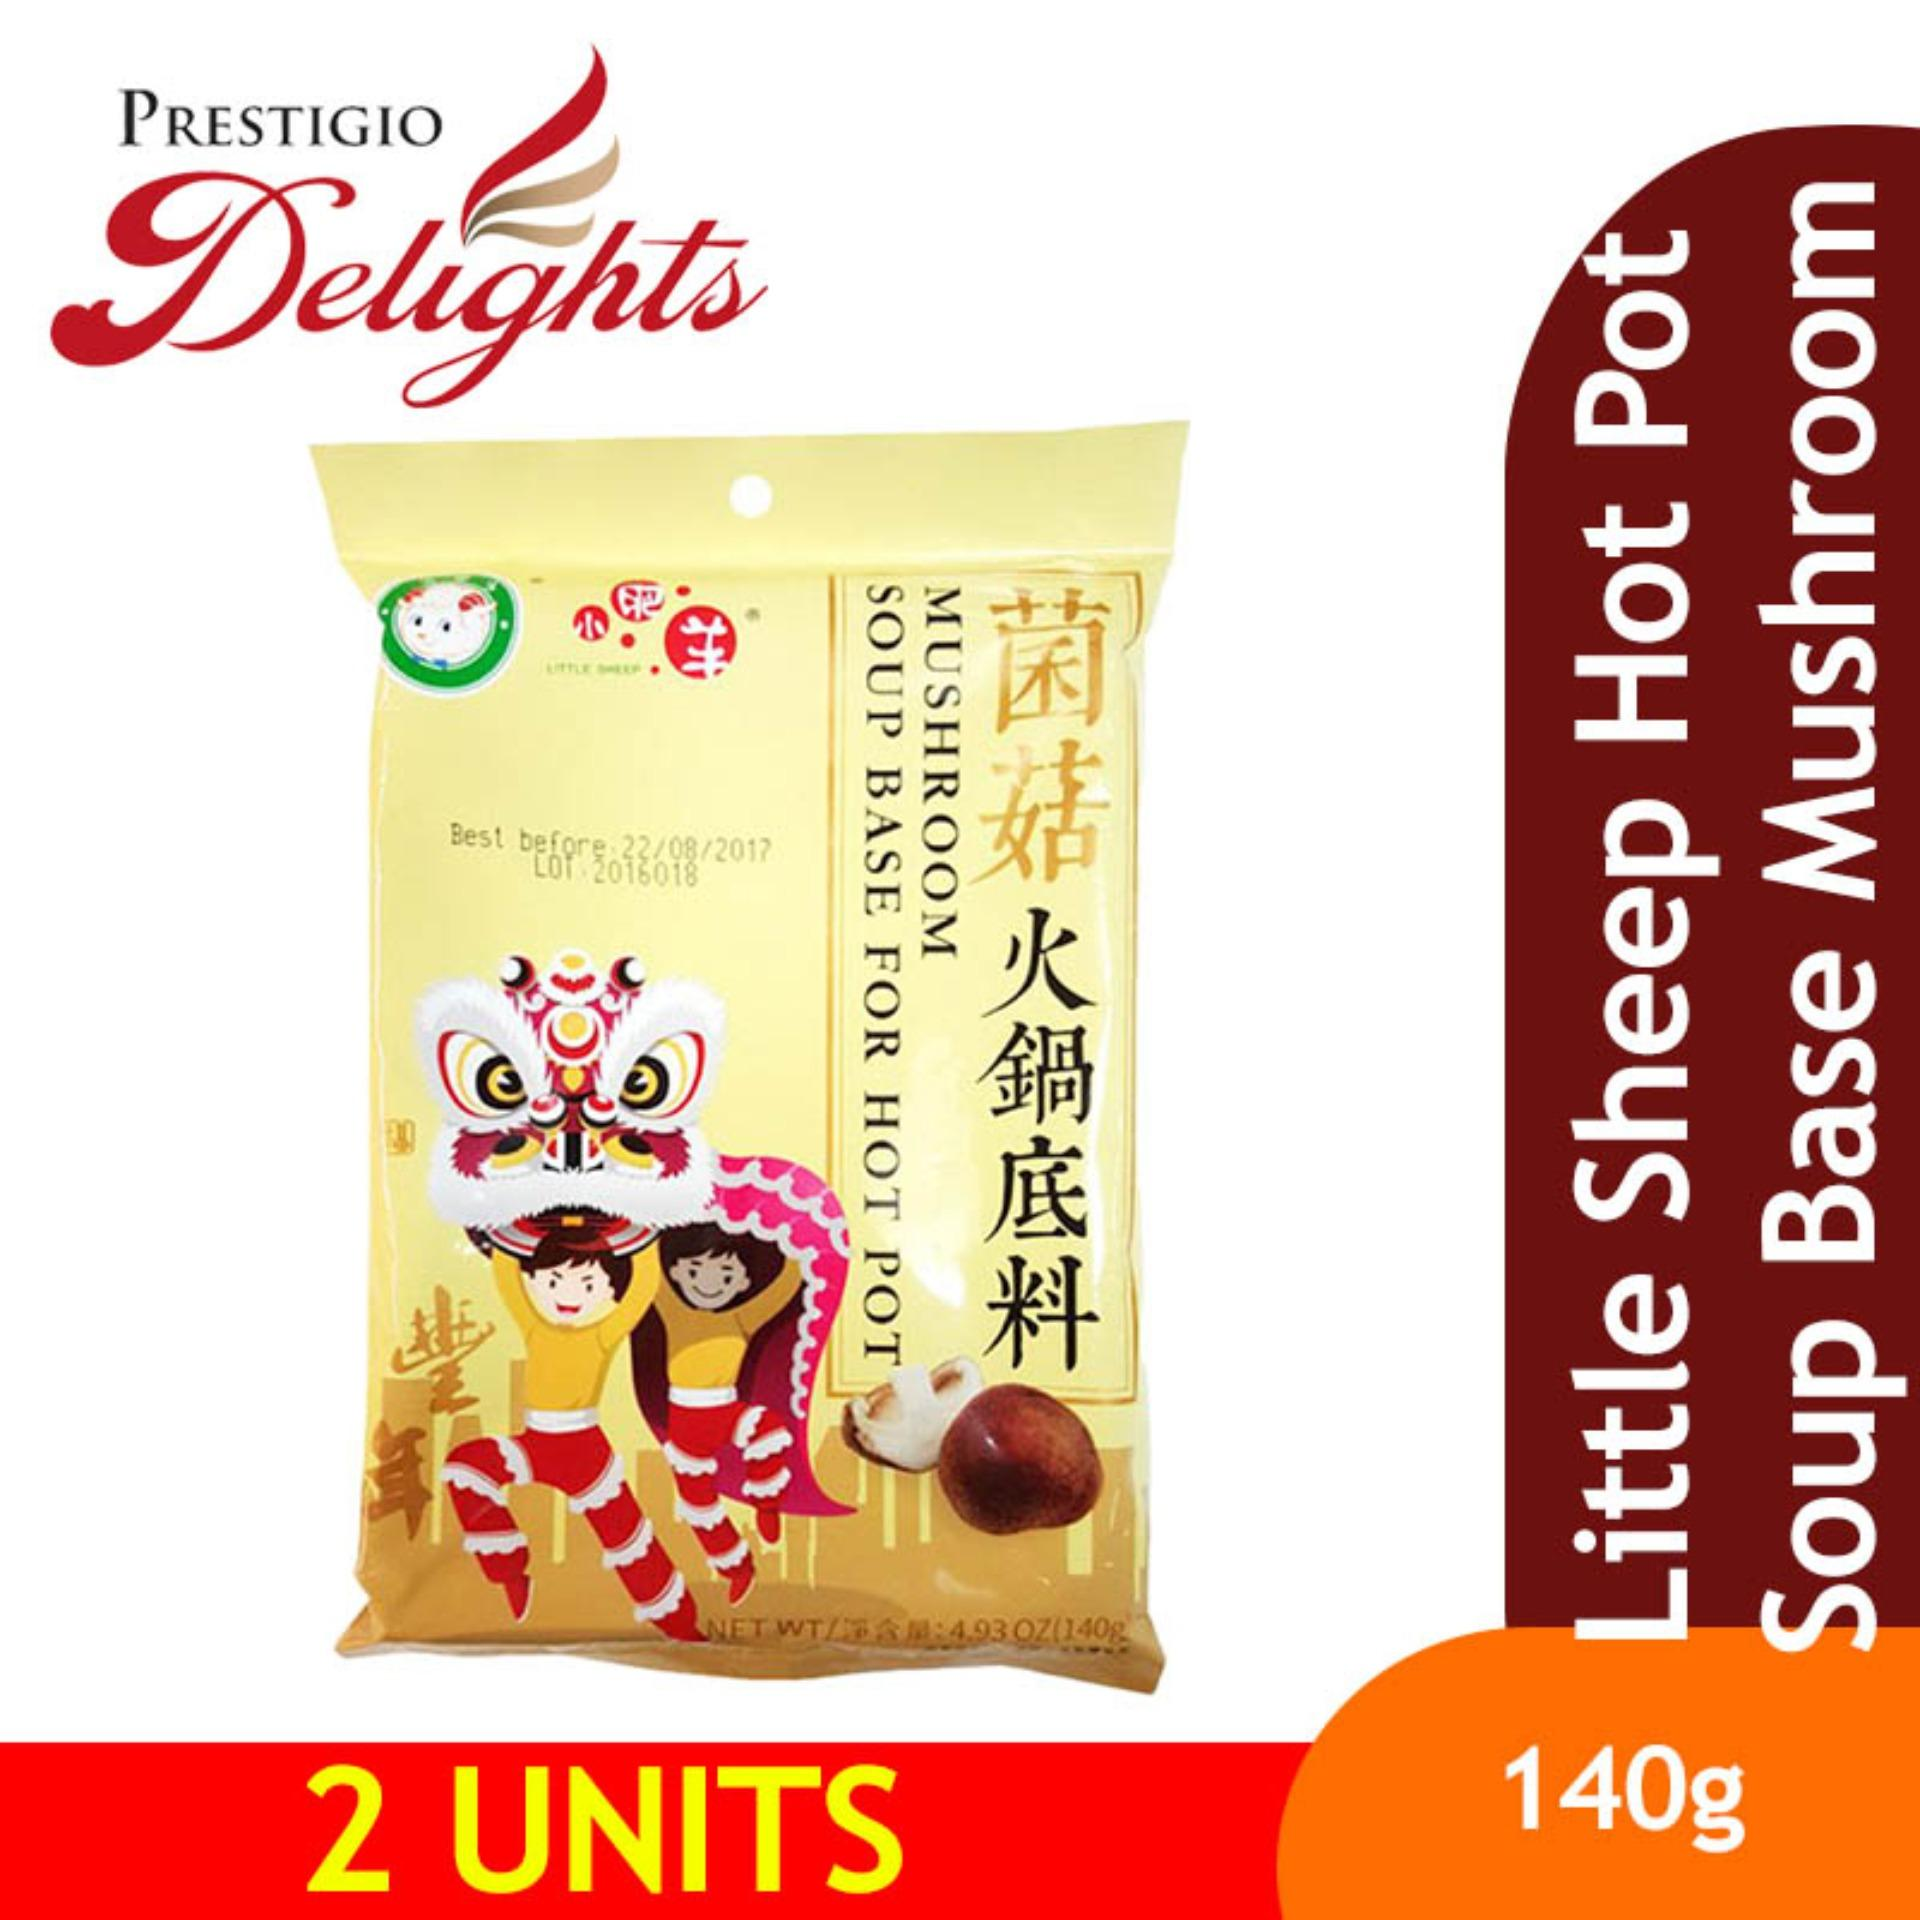 Little Sheep Hot Pot Soup Base Mushroom 140g Bundle Of 2 By Prestigio Delights.